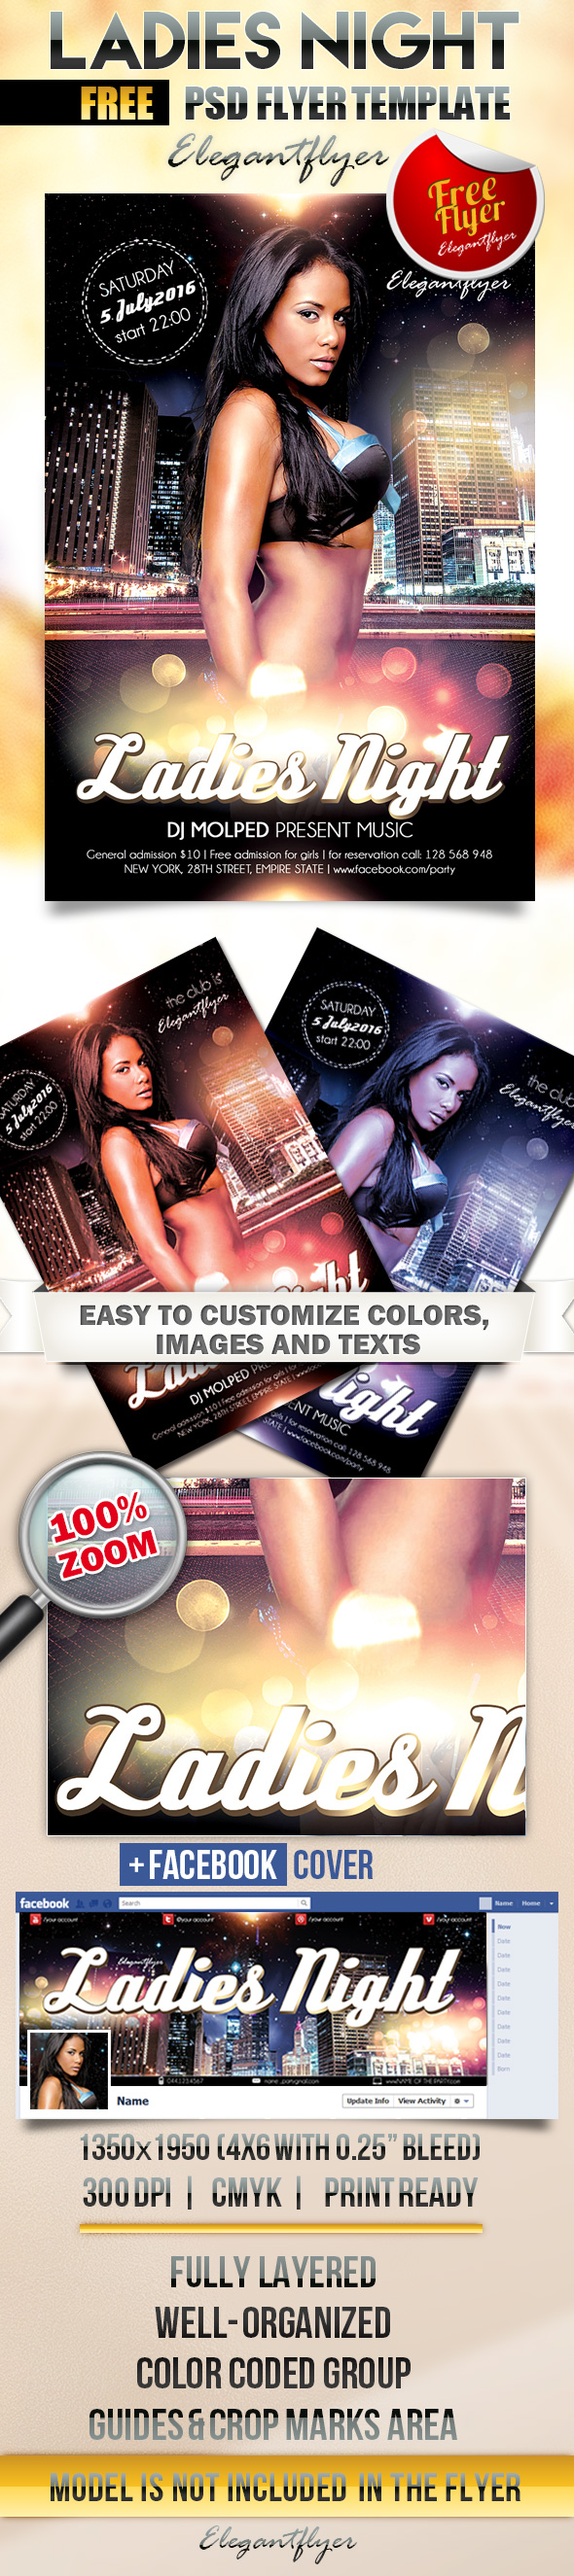 Probably Free Ladies Night Flyer Template PSD